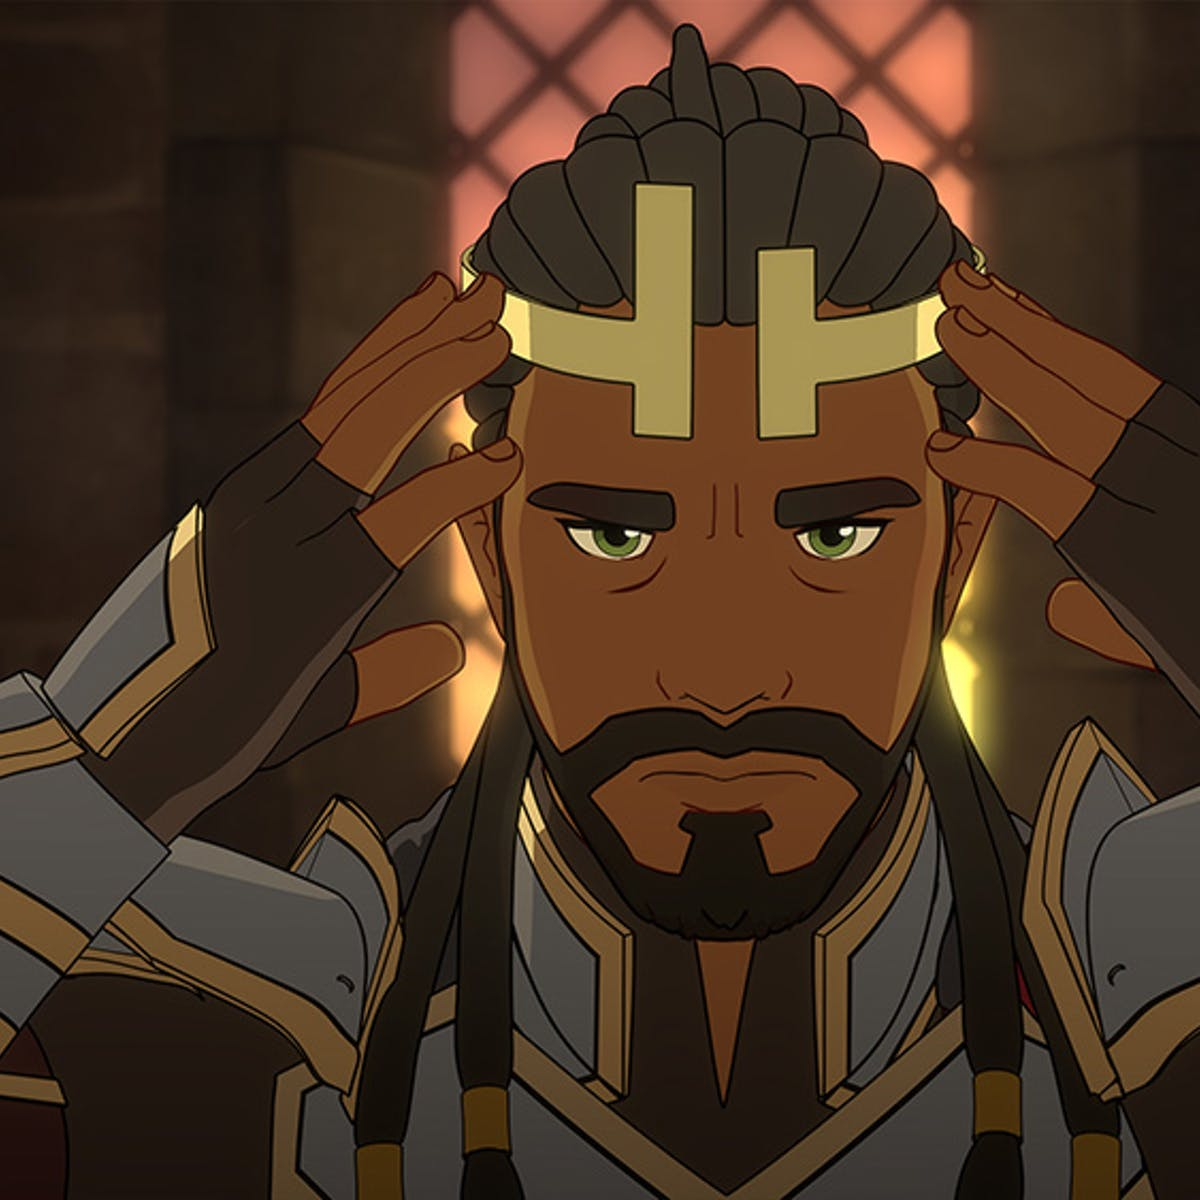 'Dragon Prince' Season 3 episode titles leak tease King Harrow's return